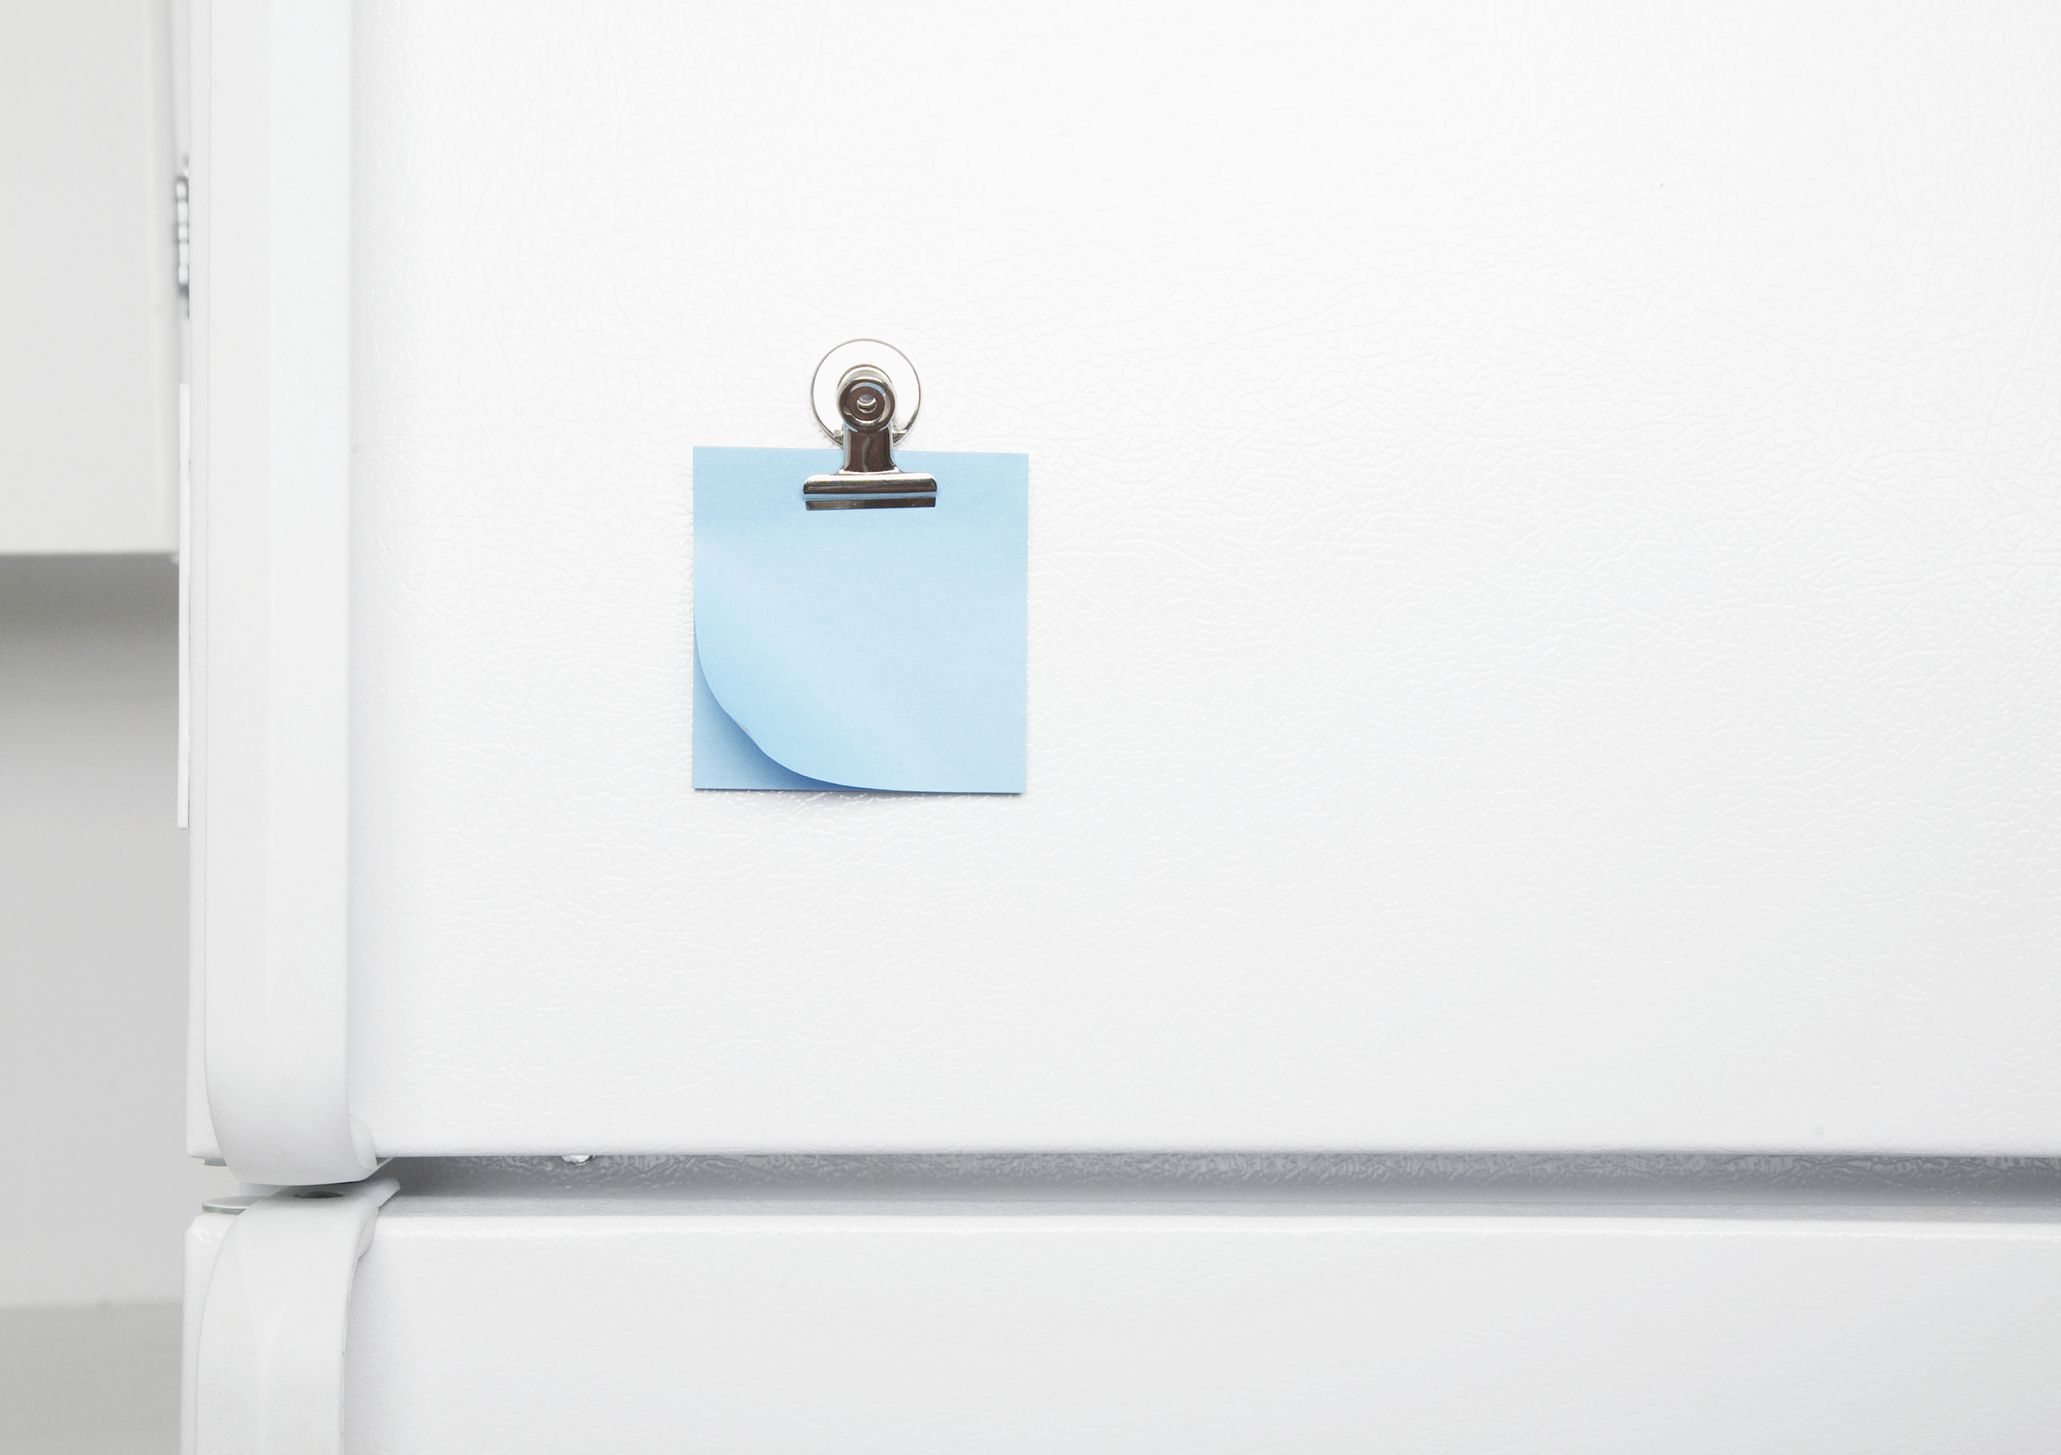 Exterior of refrigerator door with blue sticky note.